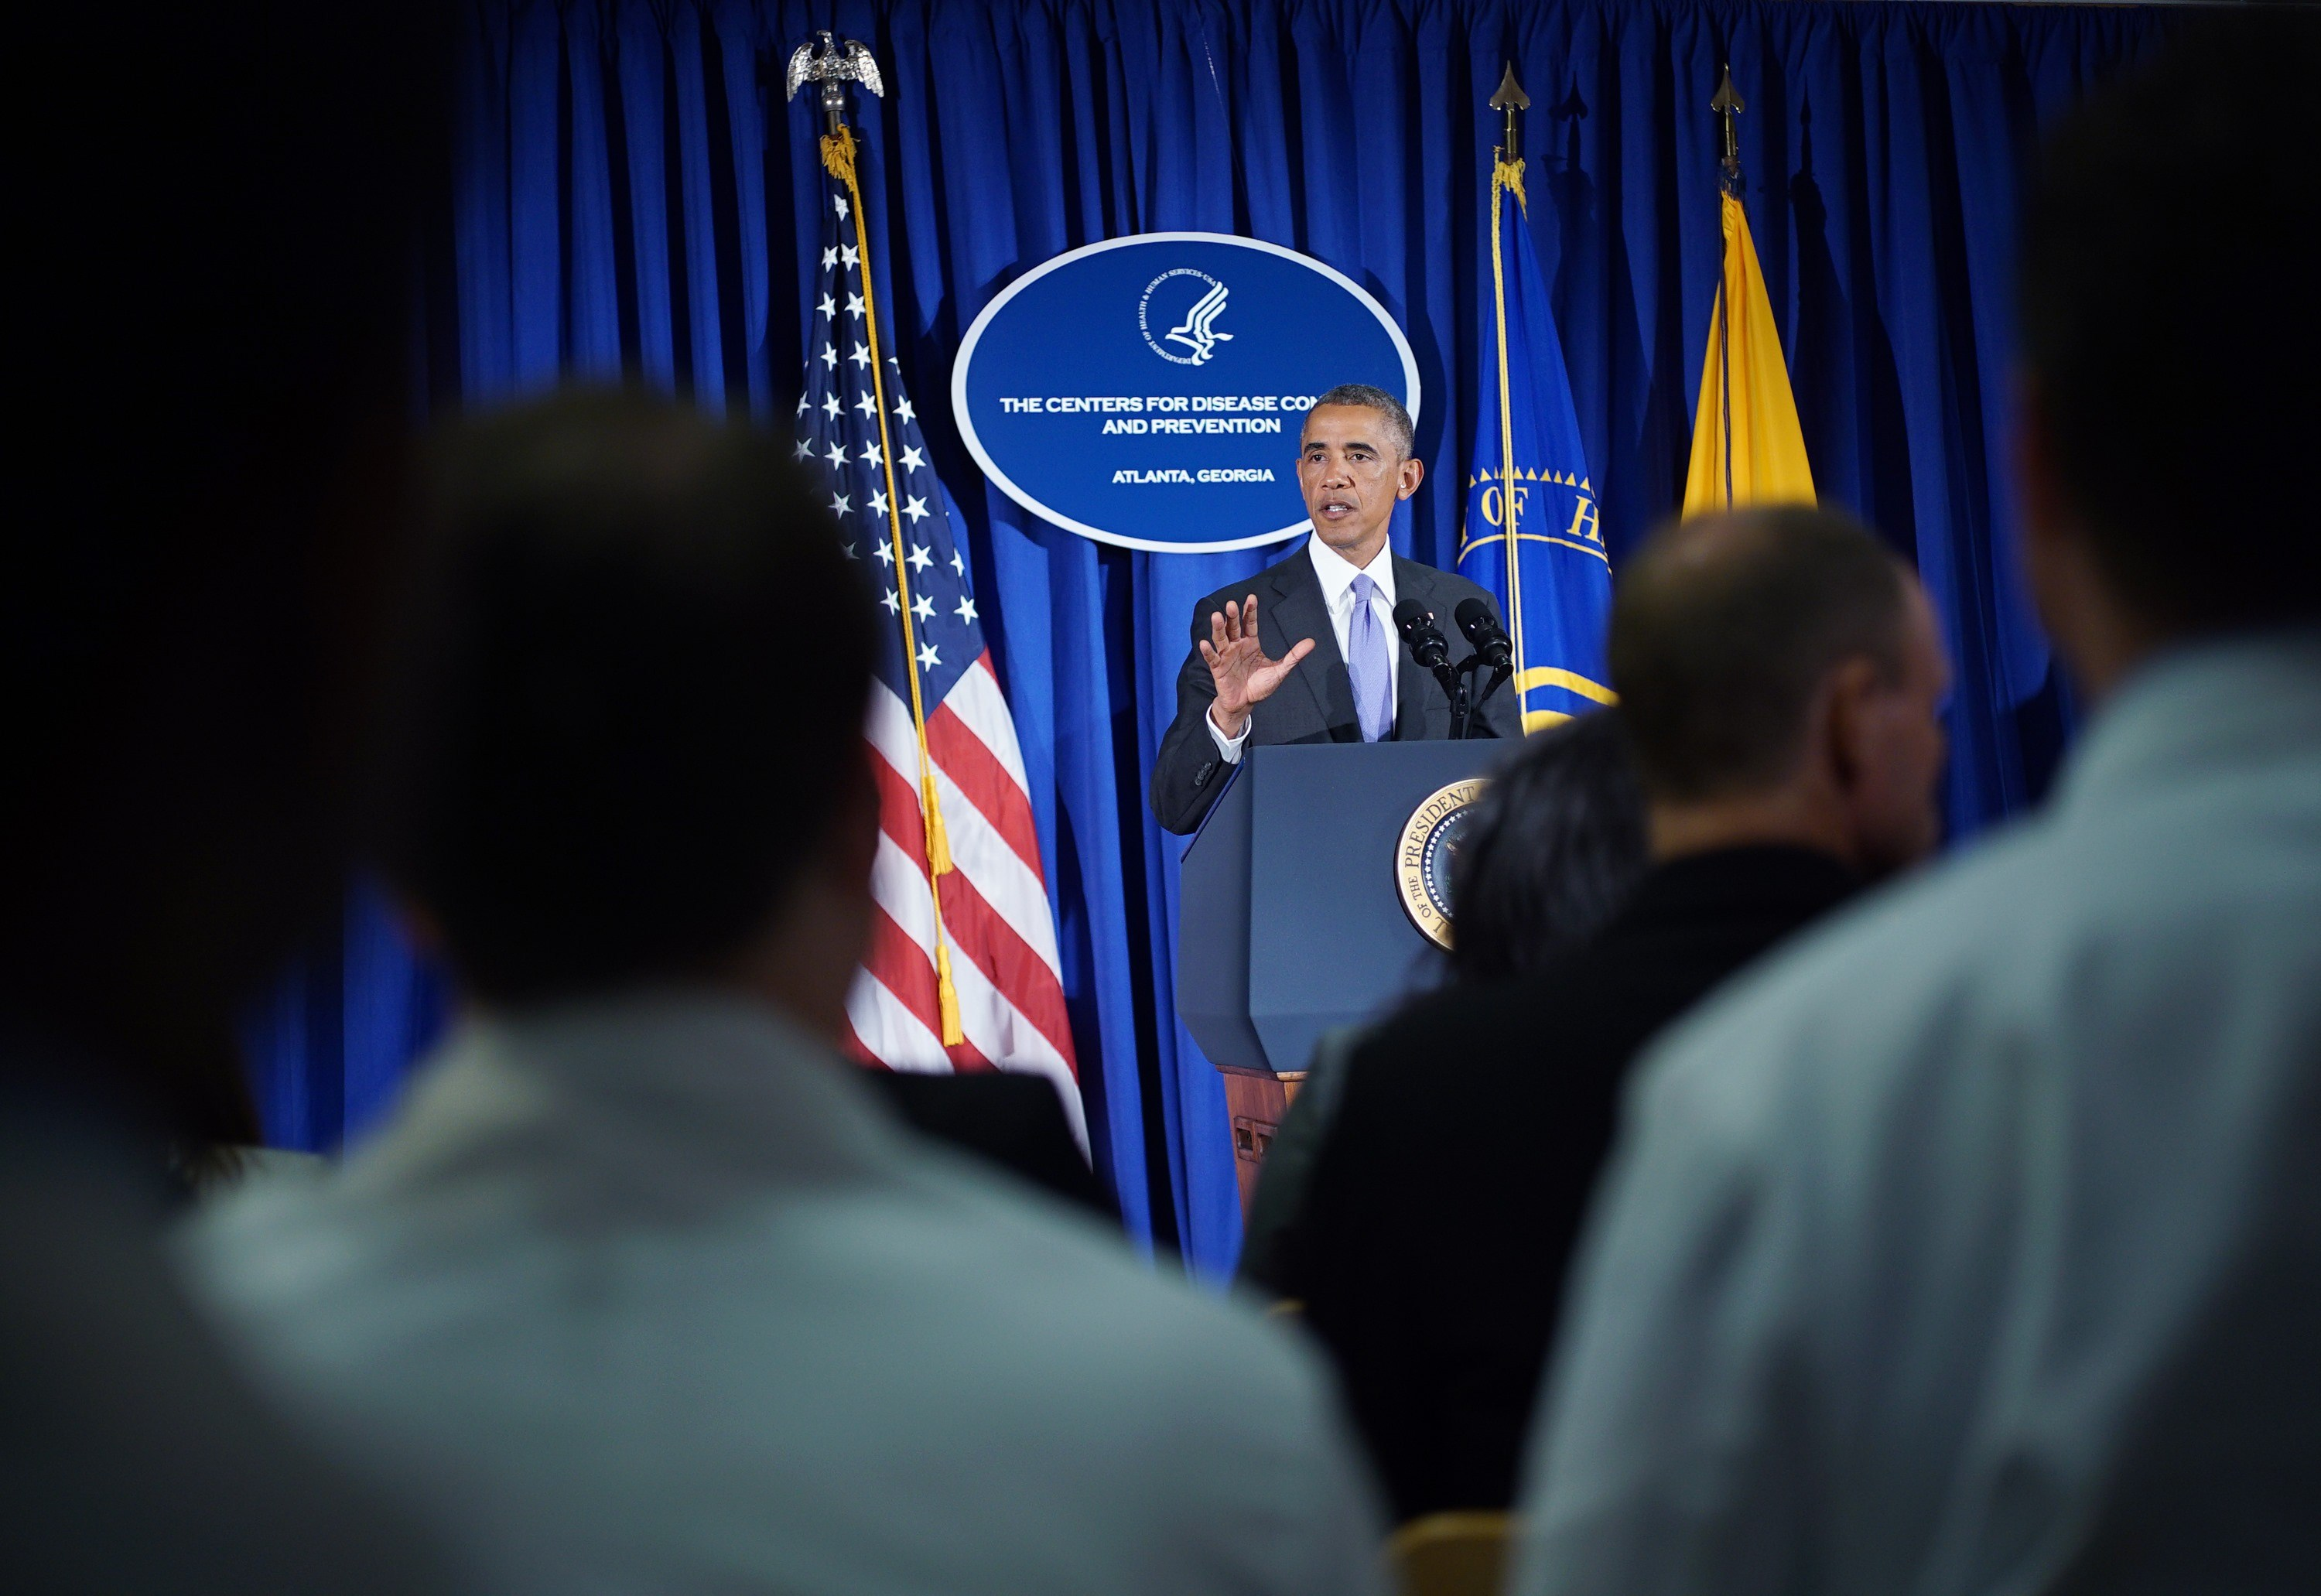 US President Barack Obama makes a statement following meetings at the Centers for Disease Control and Prevention on Sept.16, 2014 in Atlanta.